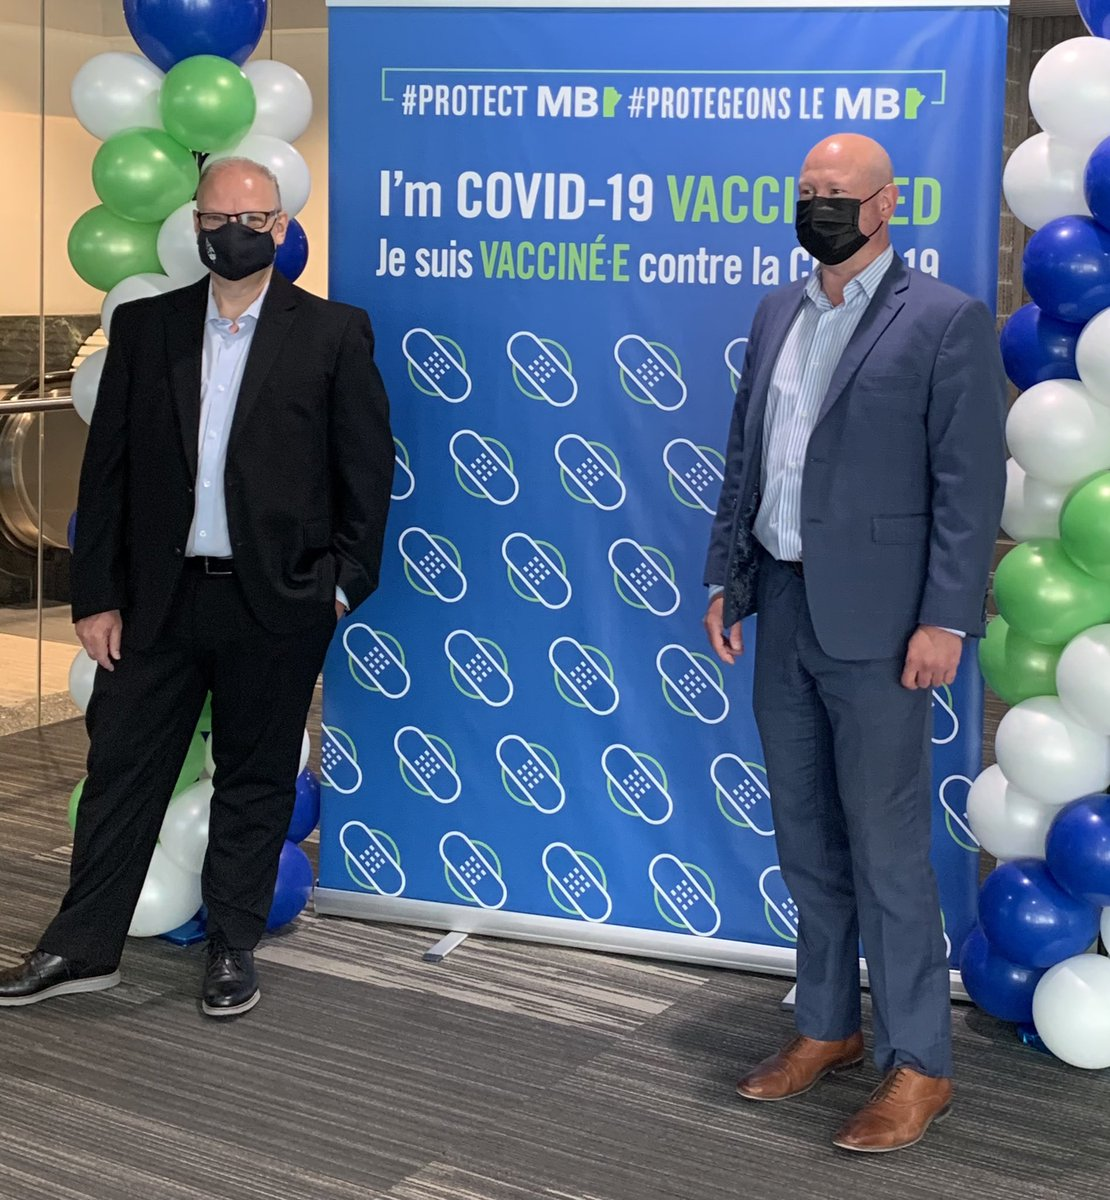 test Twitter Media - It was a pleasure to join @roussin_brent this morning at the RBC Supersite to both celebrate 1,000,000 COVID vaccine doses in Manitoba but also to thank all the staff and volunteers for their amazing work. A tremendous sense of optimism. #MBPoli https://t.co/pKxu6TdLr0